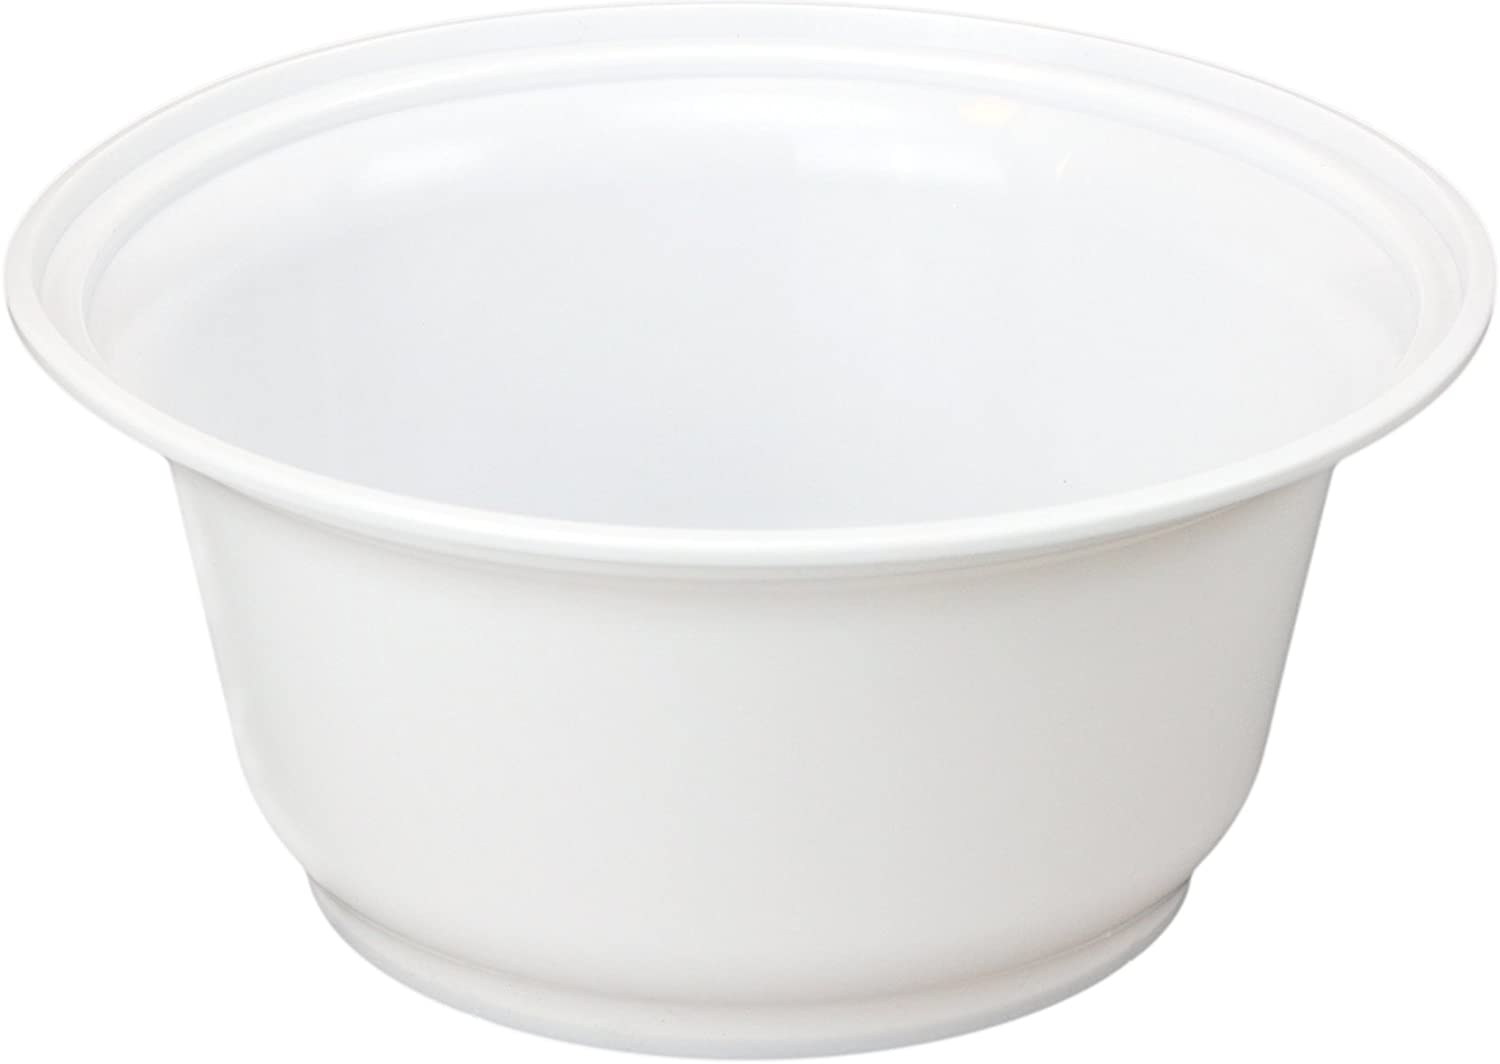 Microwavable 36oz White Plastic Bowls w/Lids, Rigid Recyclable Containers Food Storage for Hot or Cold Foods (50 count)